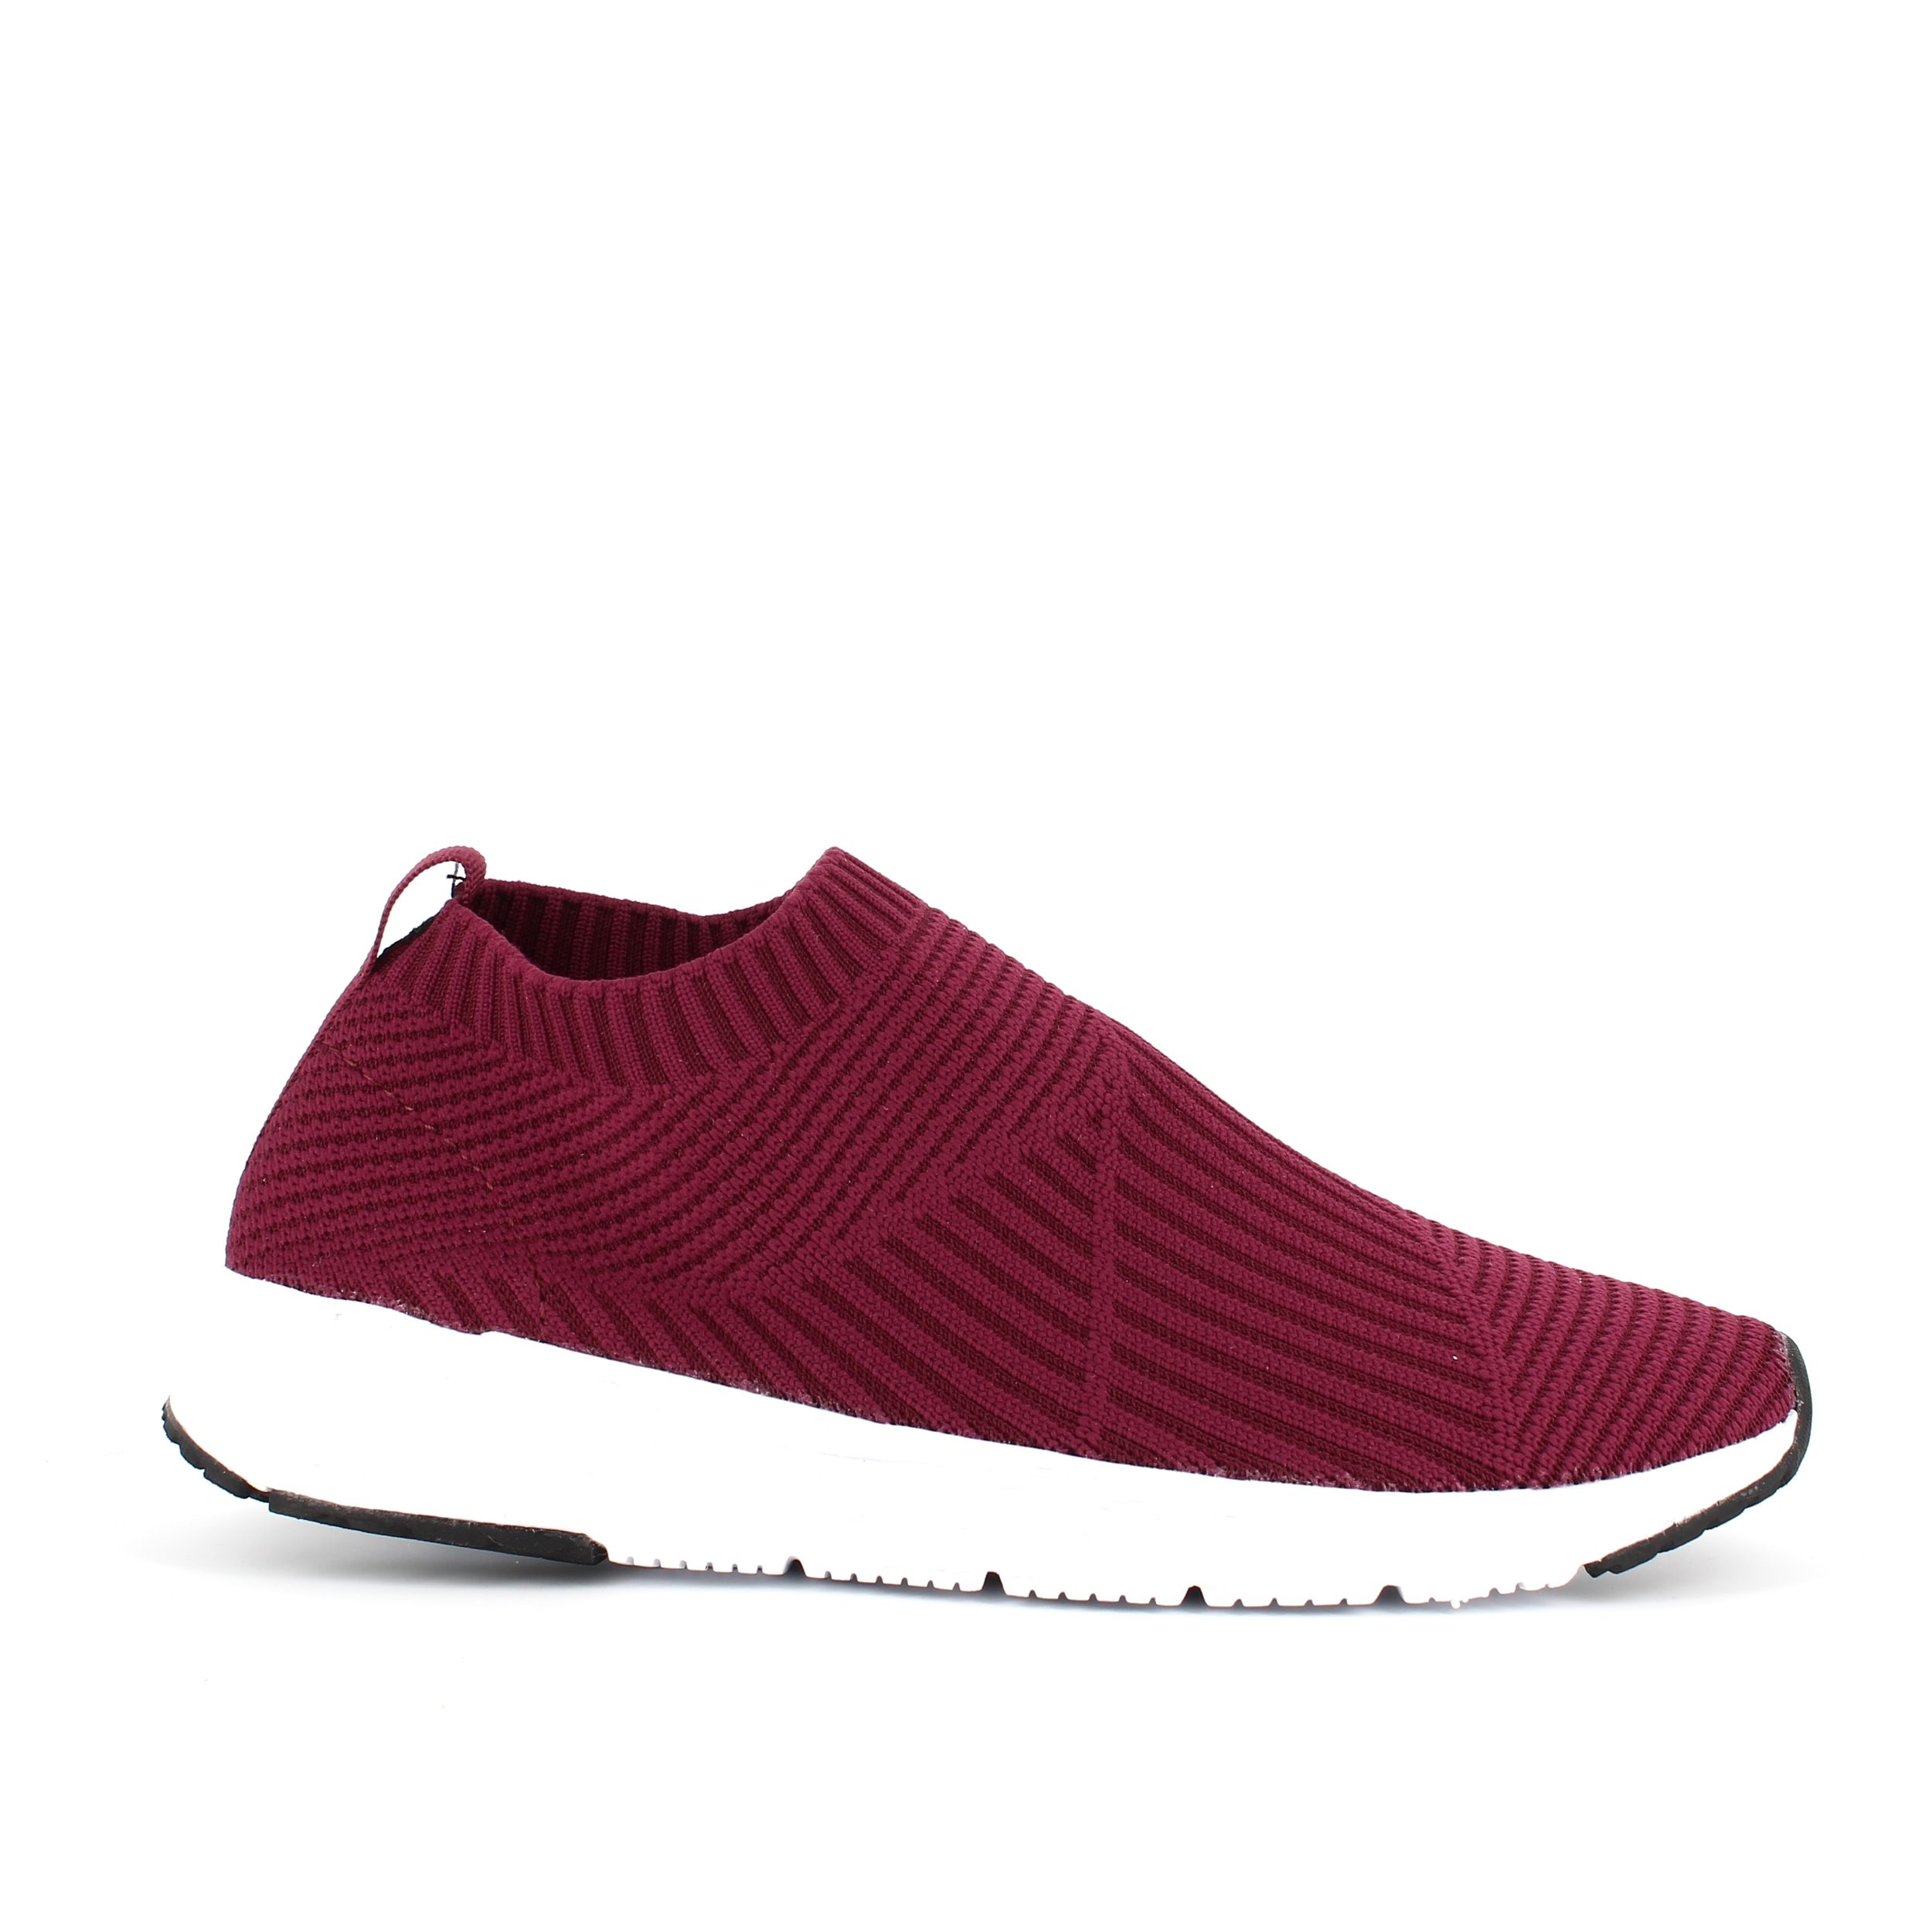 Image of   Bordeaux strikket slip in sneakers - god til smalle fødder - 37